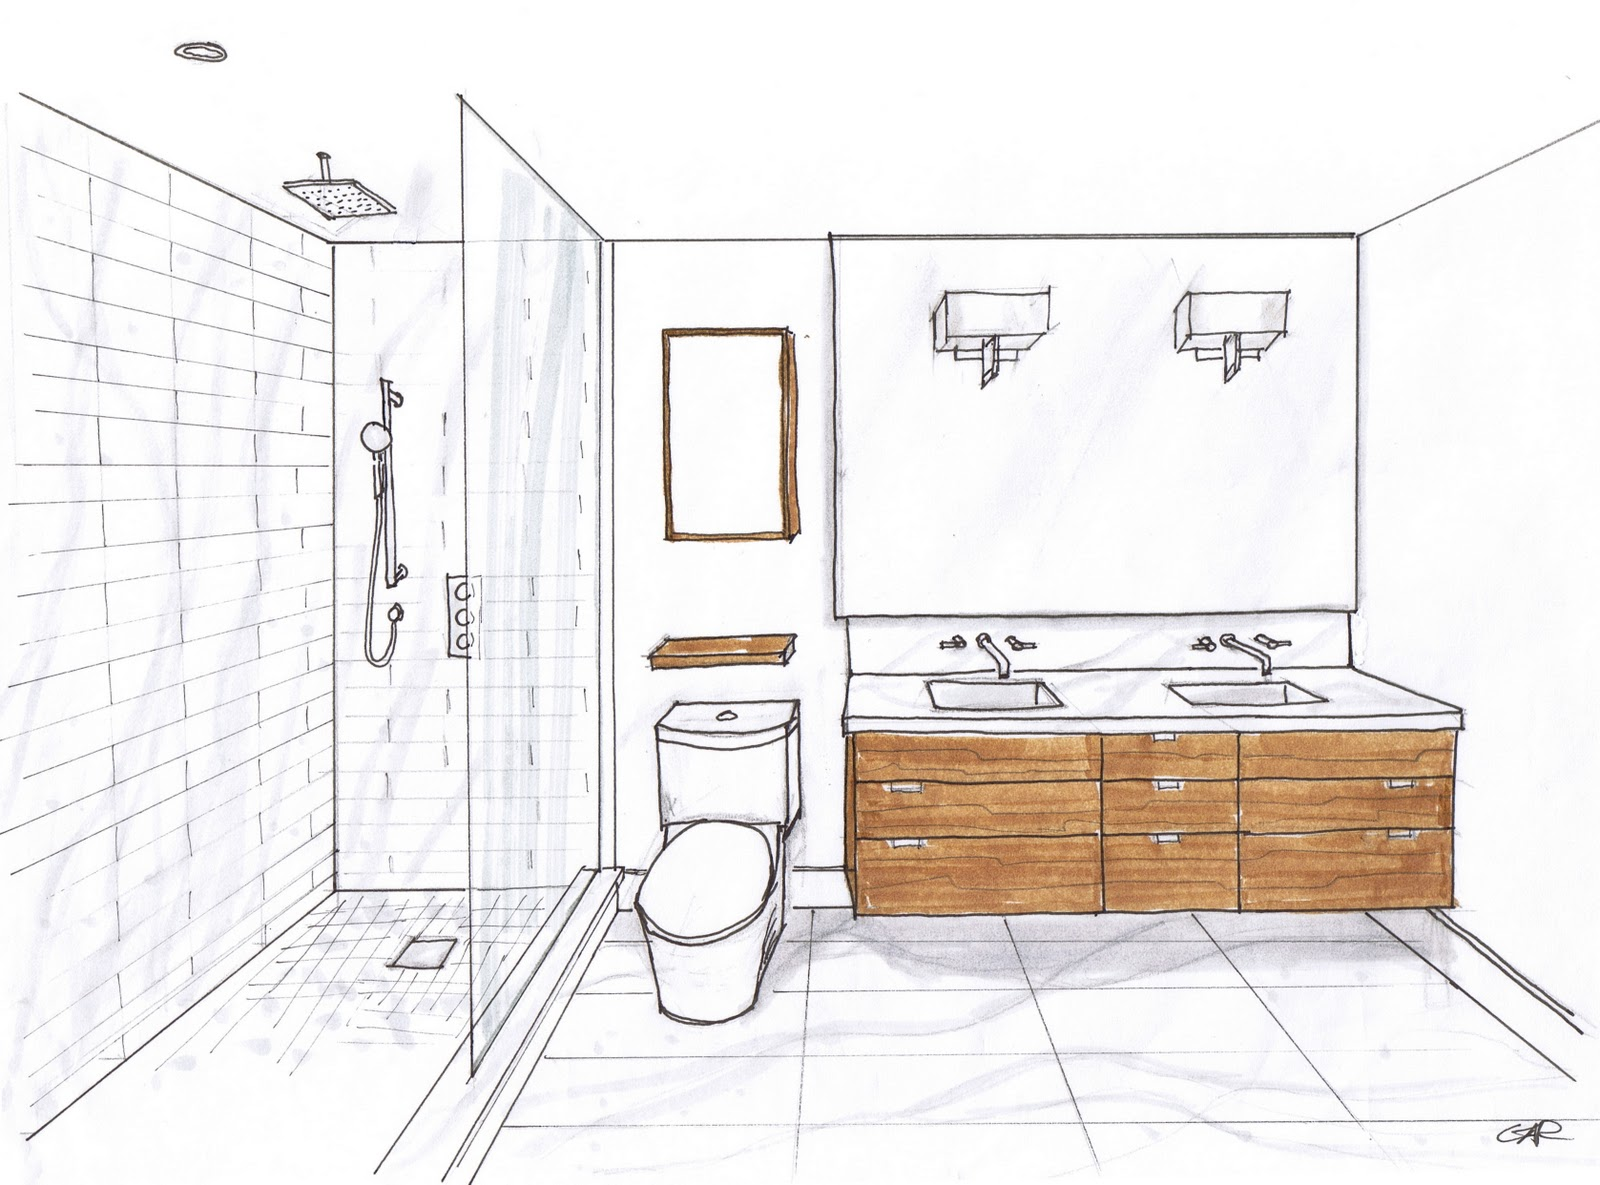 Creed 70 39 s bungalow bathroom designs for Master bathroom floor plans 10x12